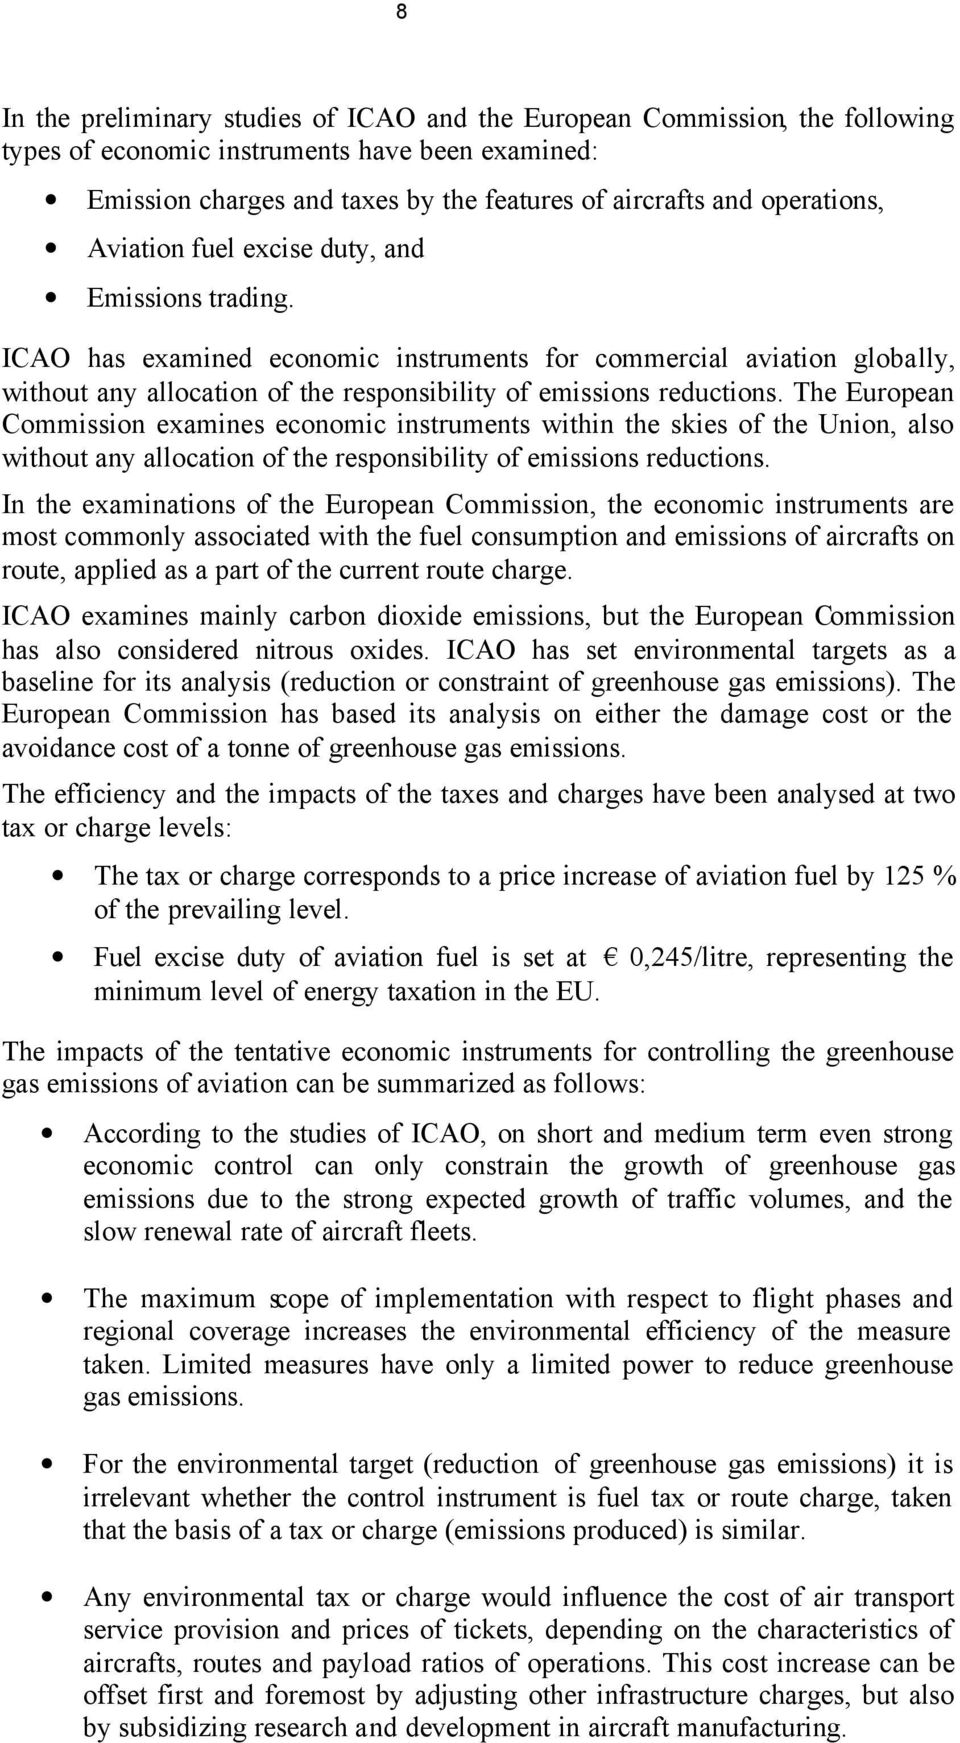 ICAO has examined economic instruments for commercial aviation globally, without any allocation of the responsibility of emissions reductions.